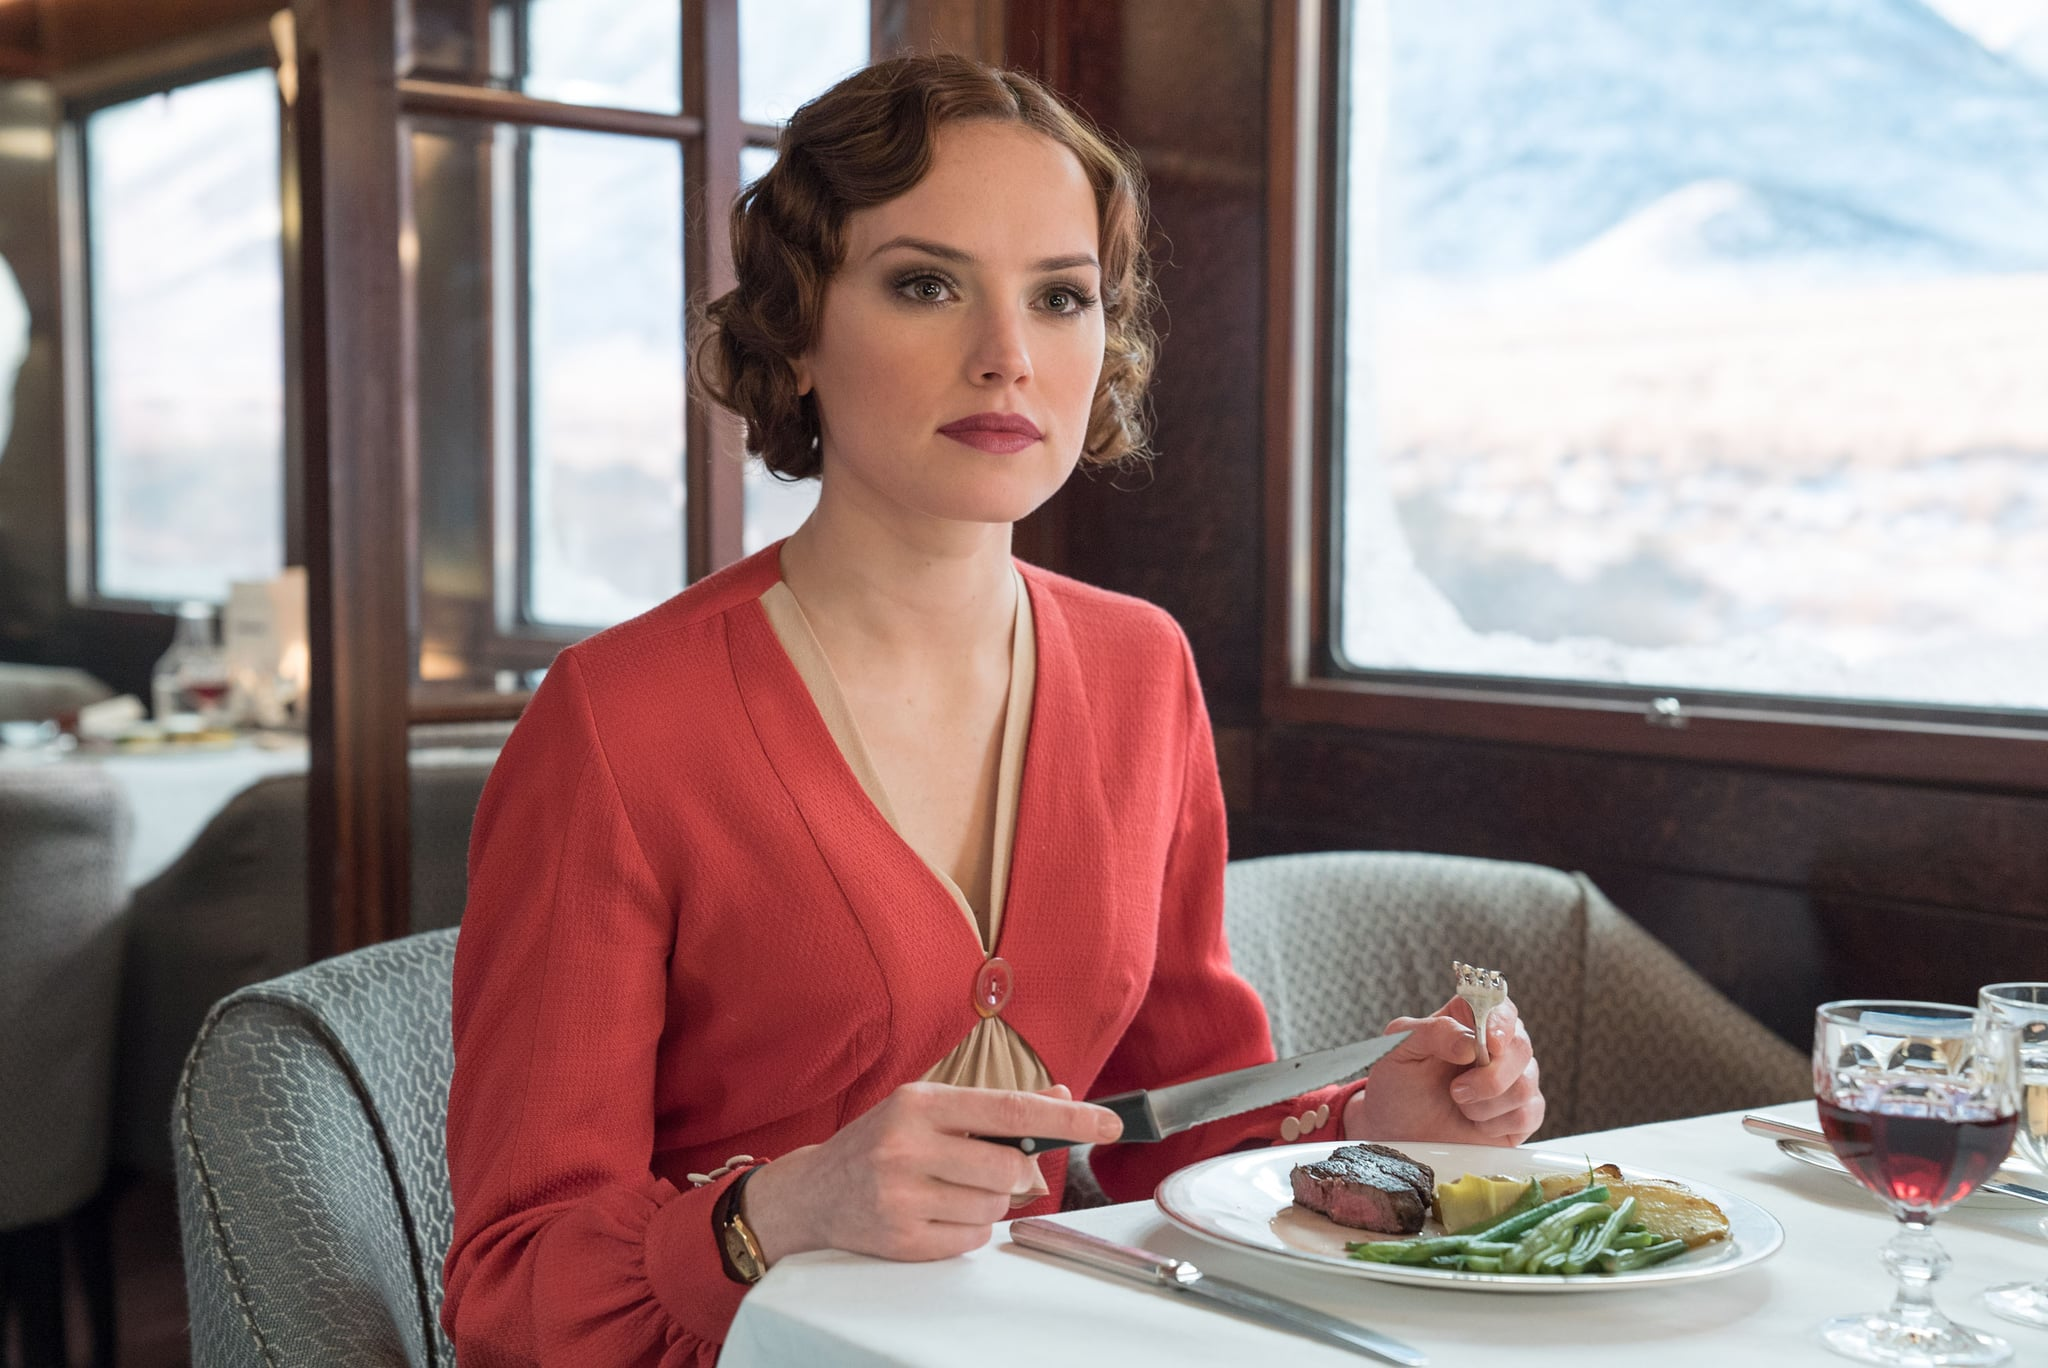 「Murder on orient express food」の画像検索結果